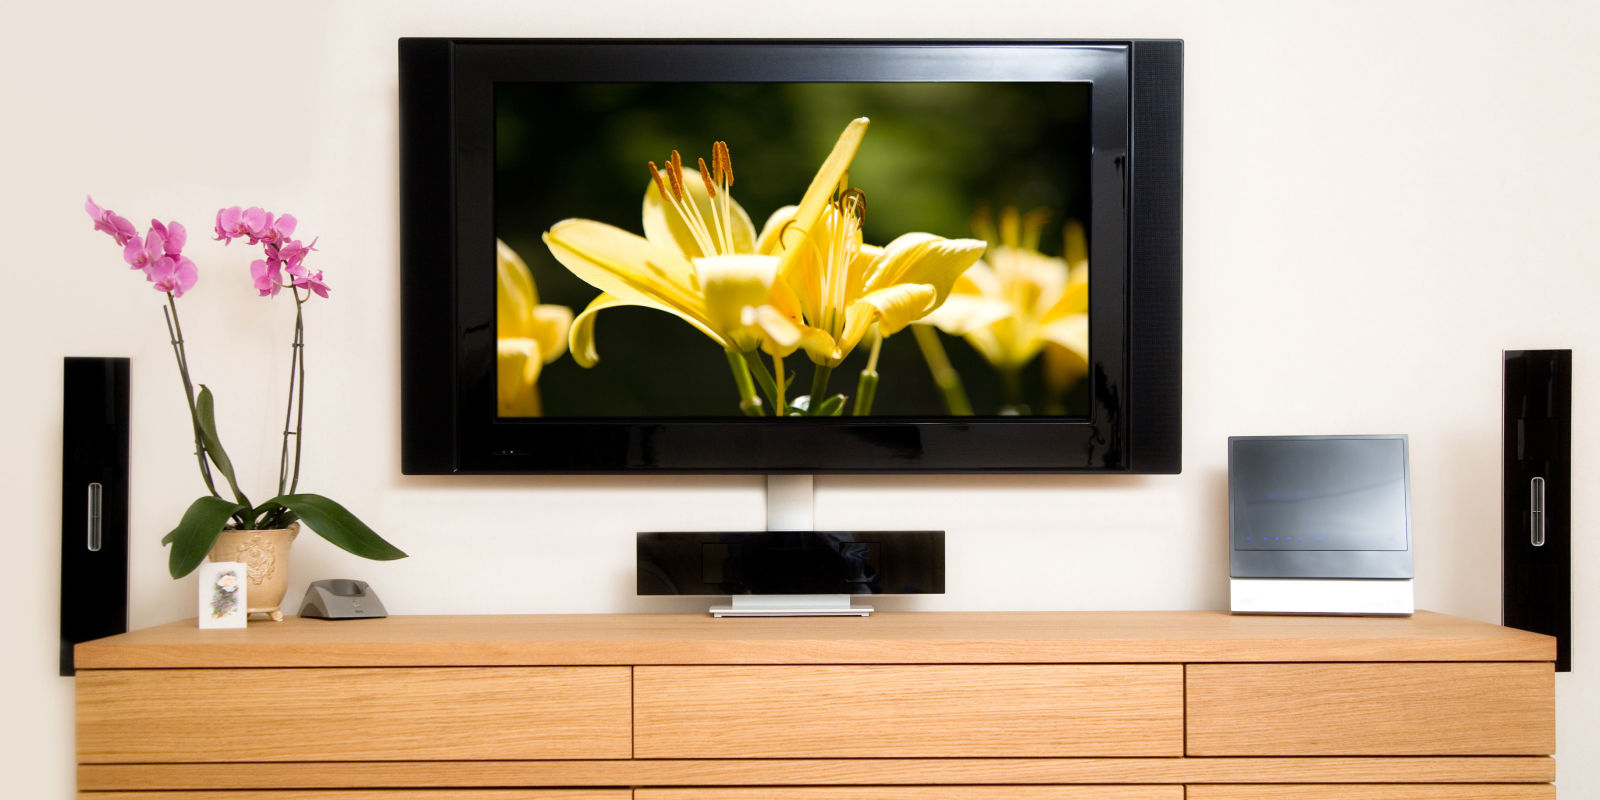 Updating Your Television What To Look For When Choosing